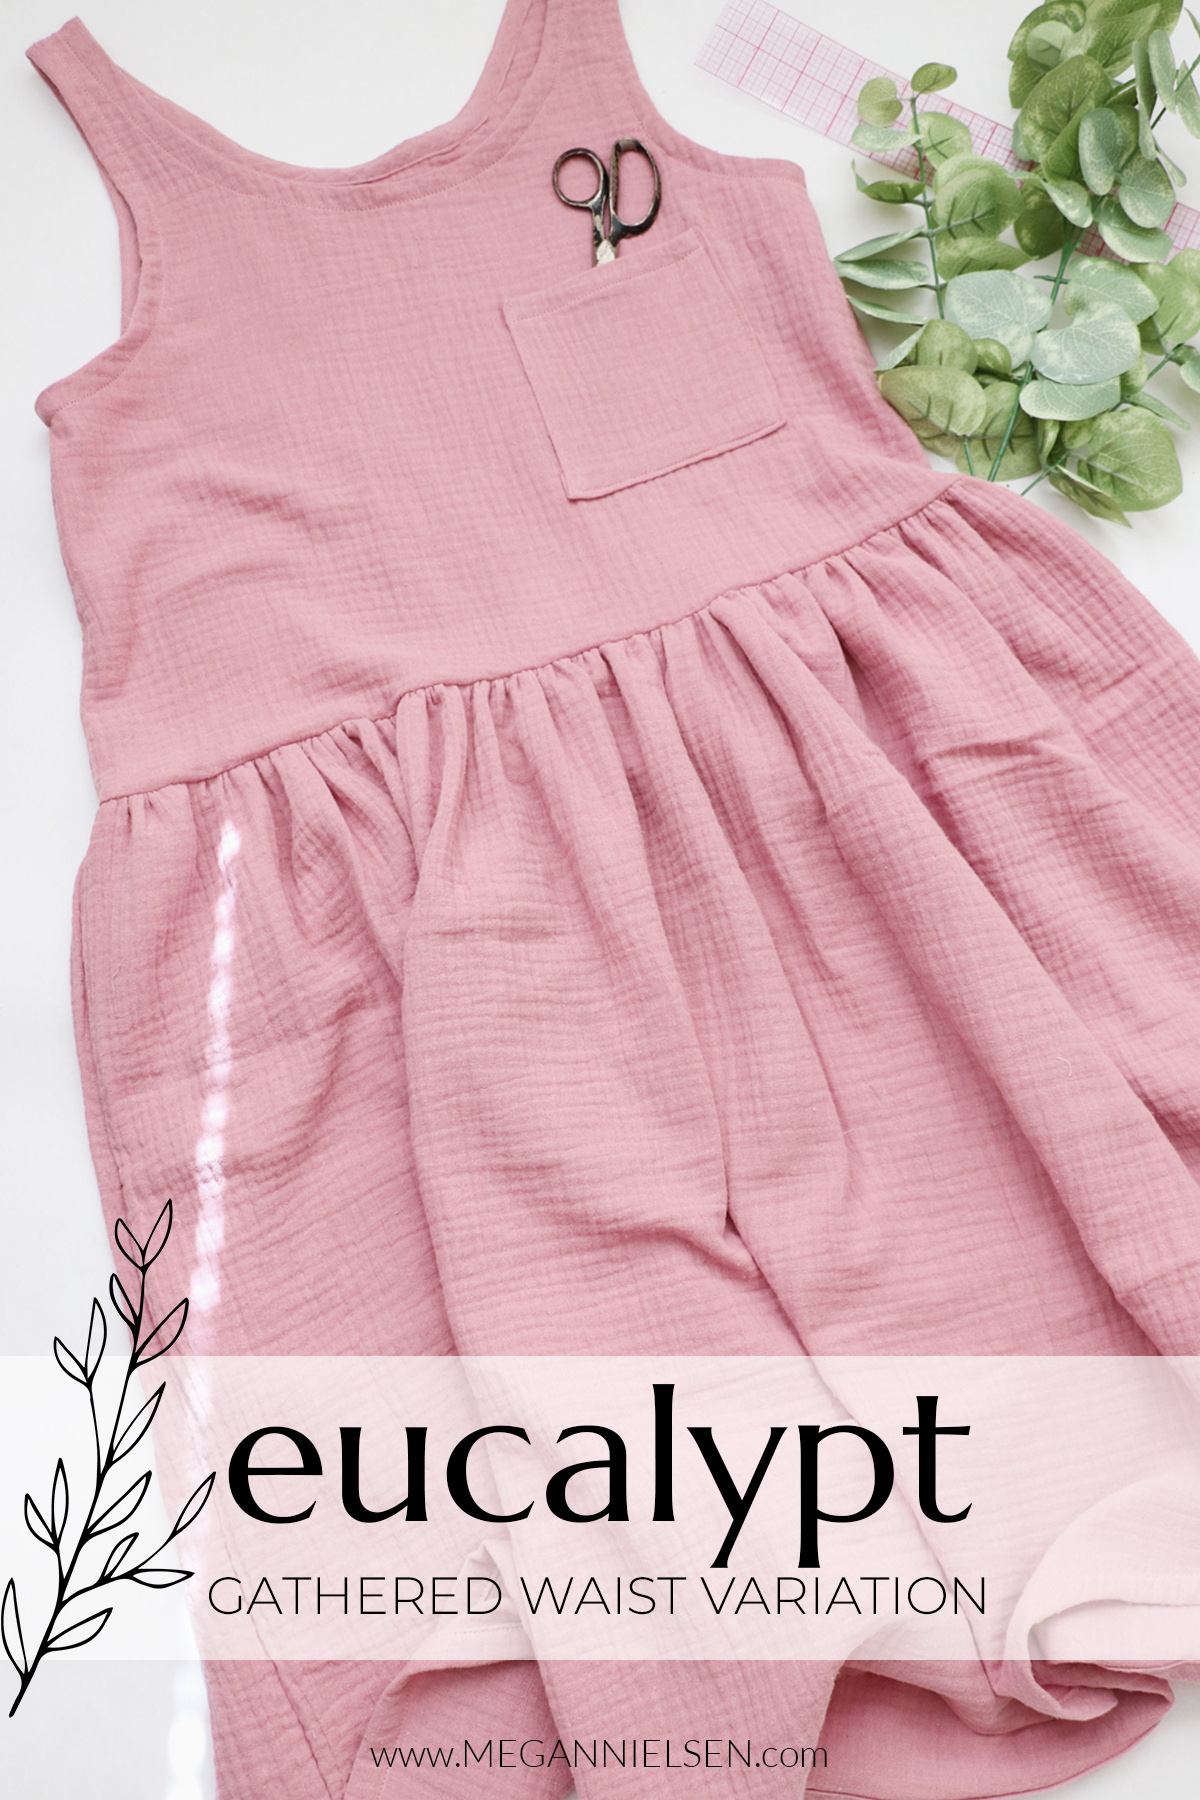 How to sew a gathered waist variation of the Eucalypt dress and op by Megan Nielsen patterns